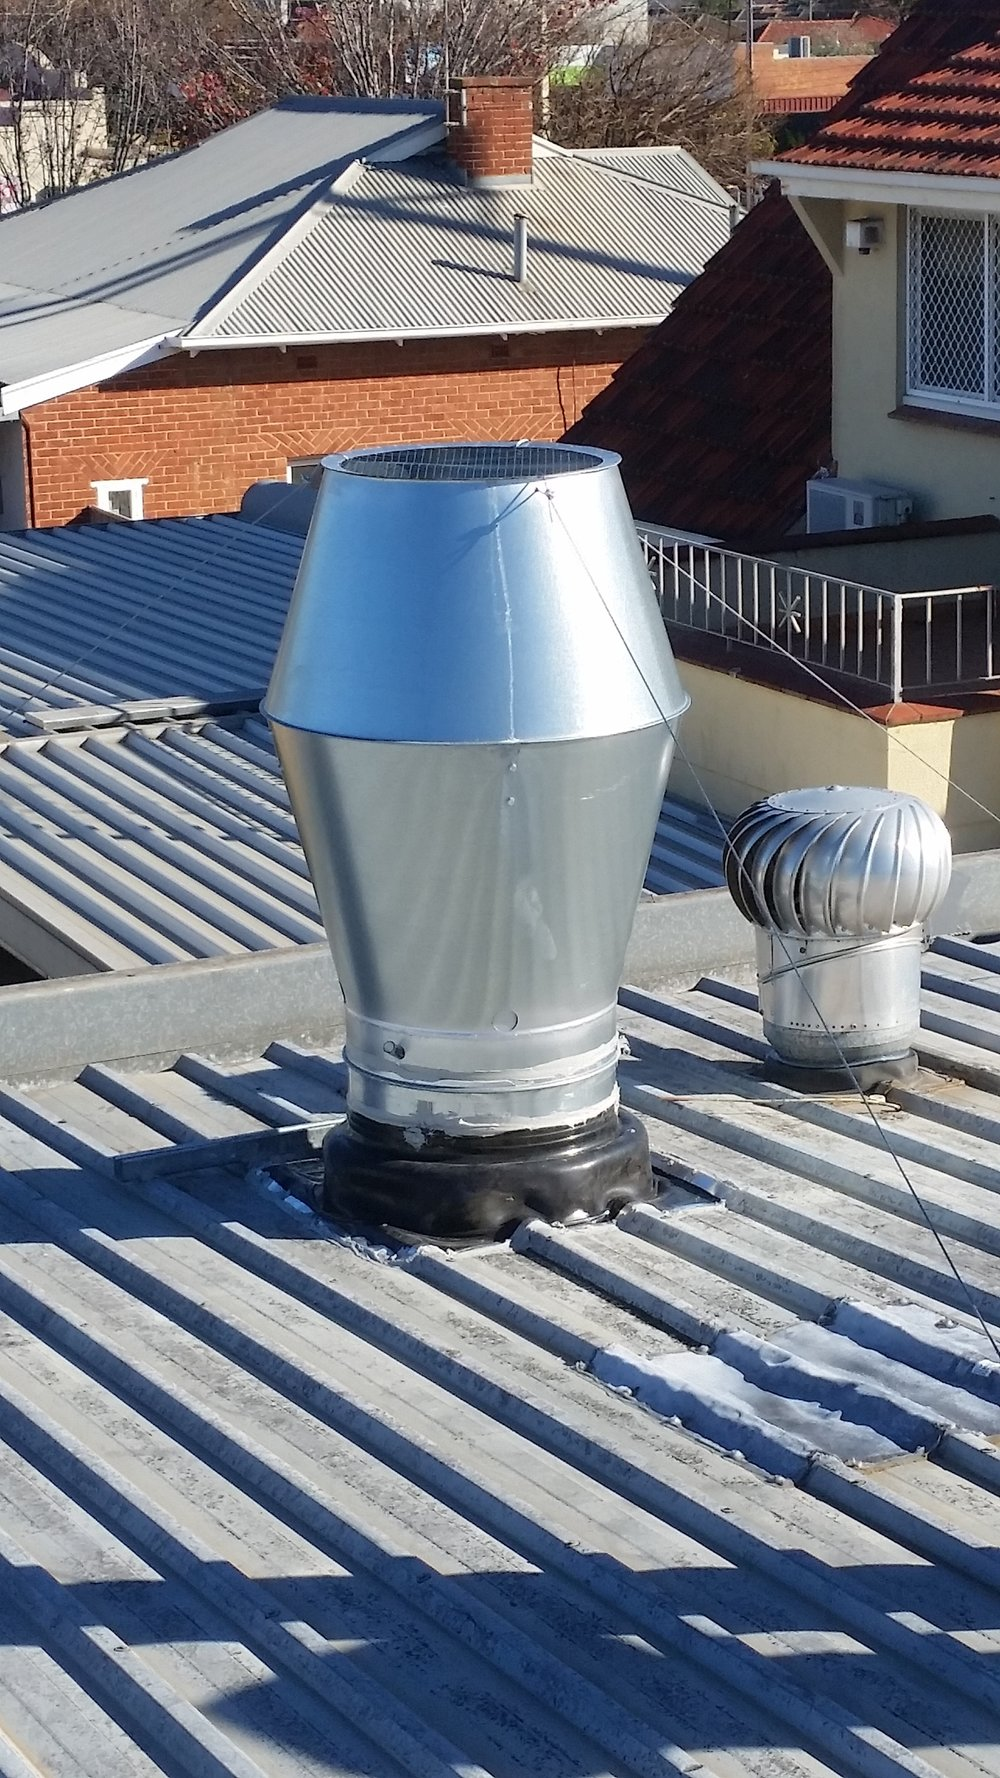 Exhaust weather cowls